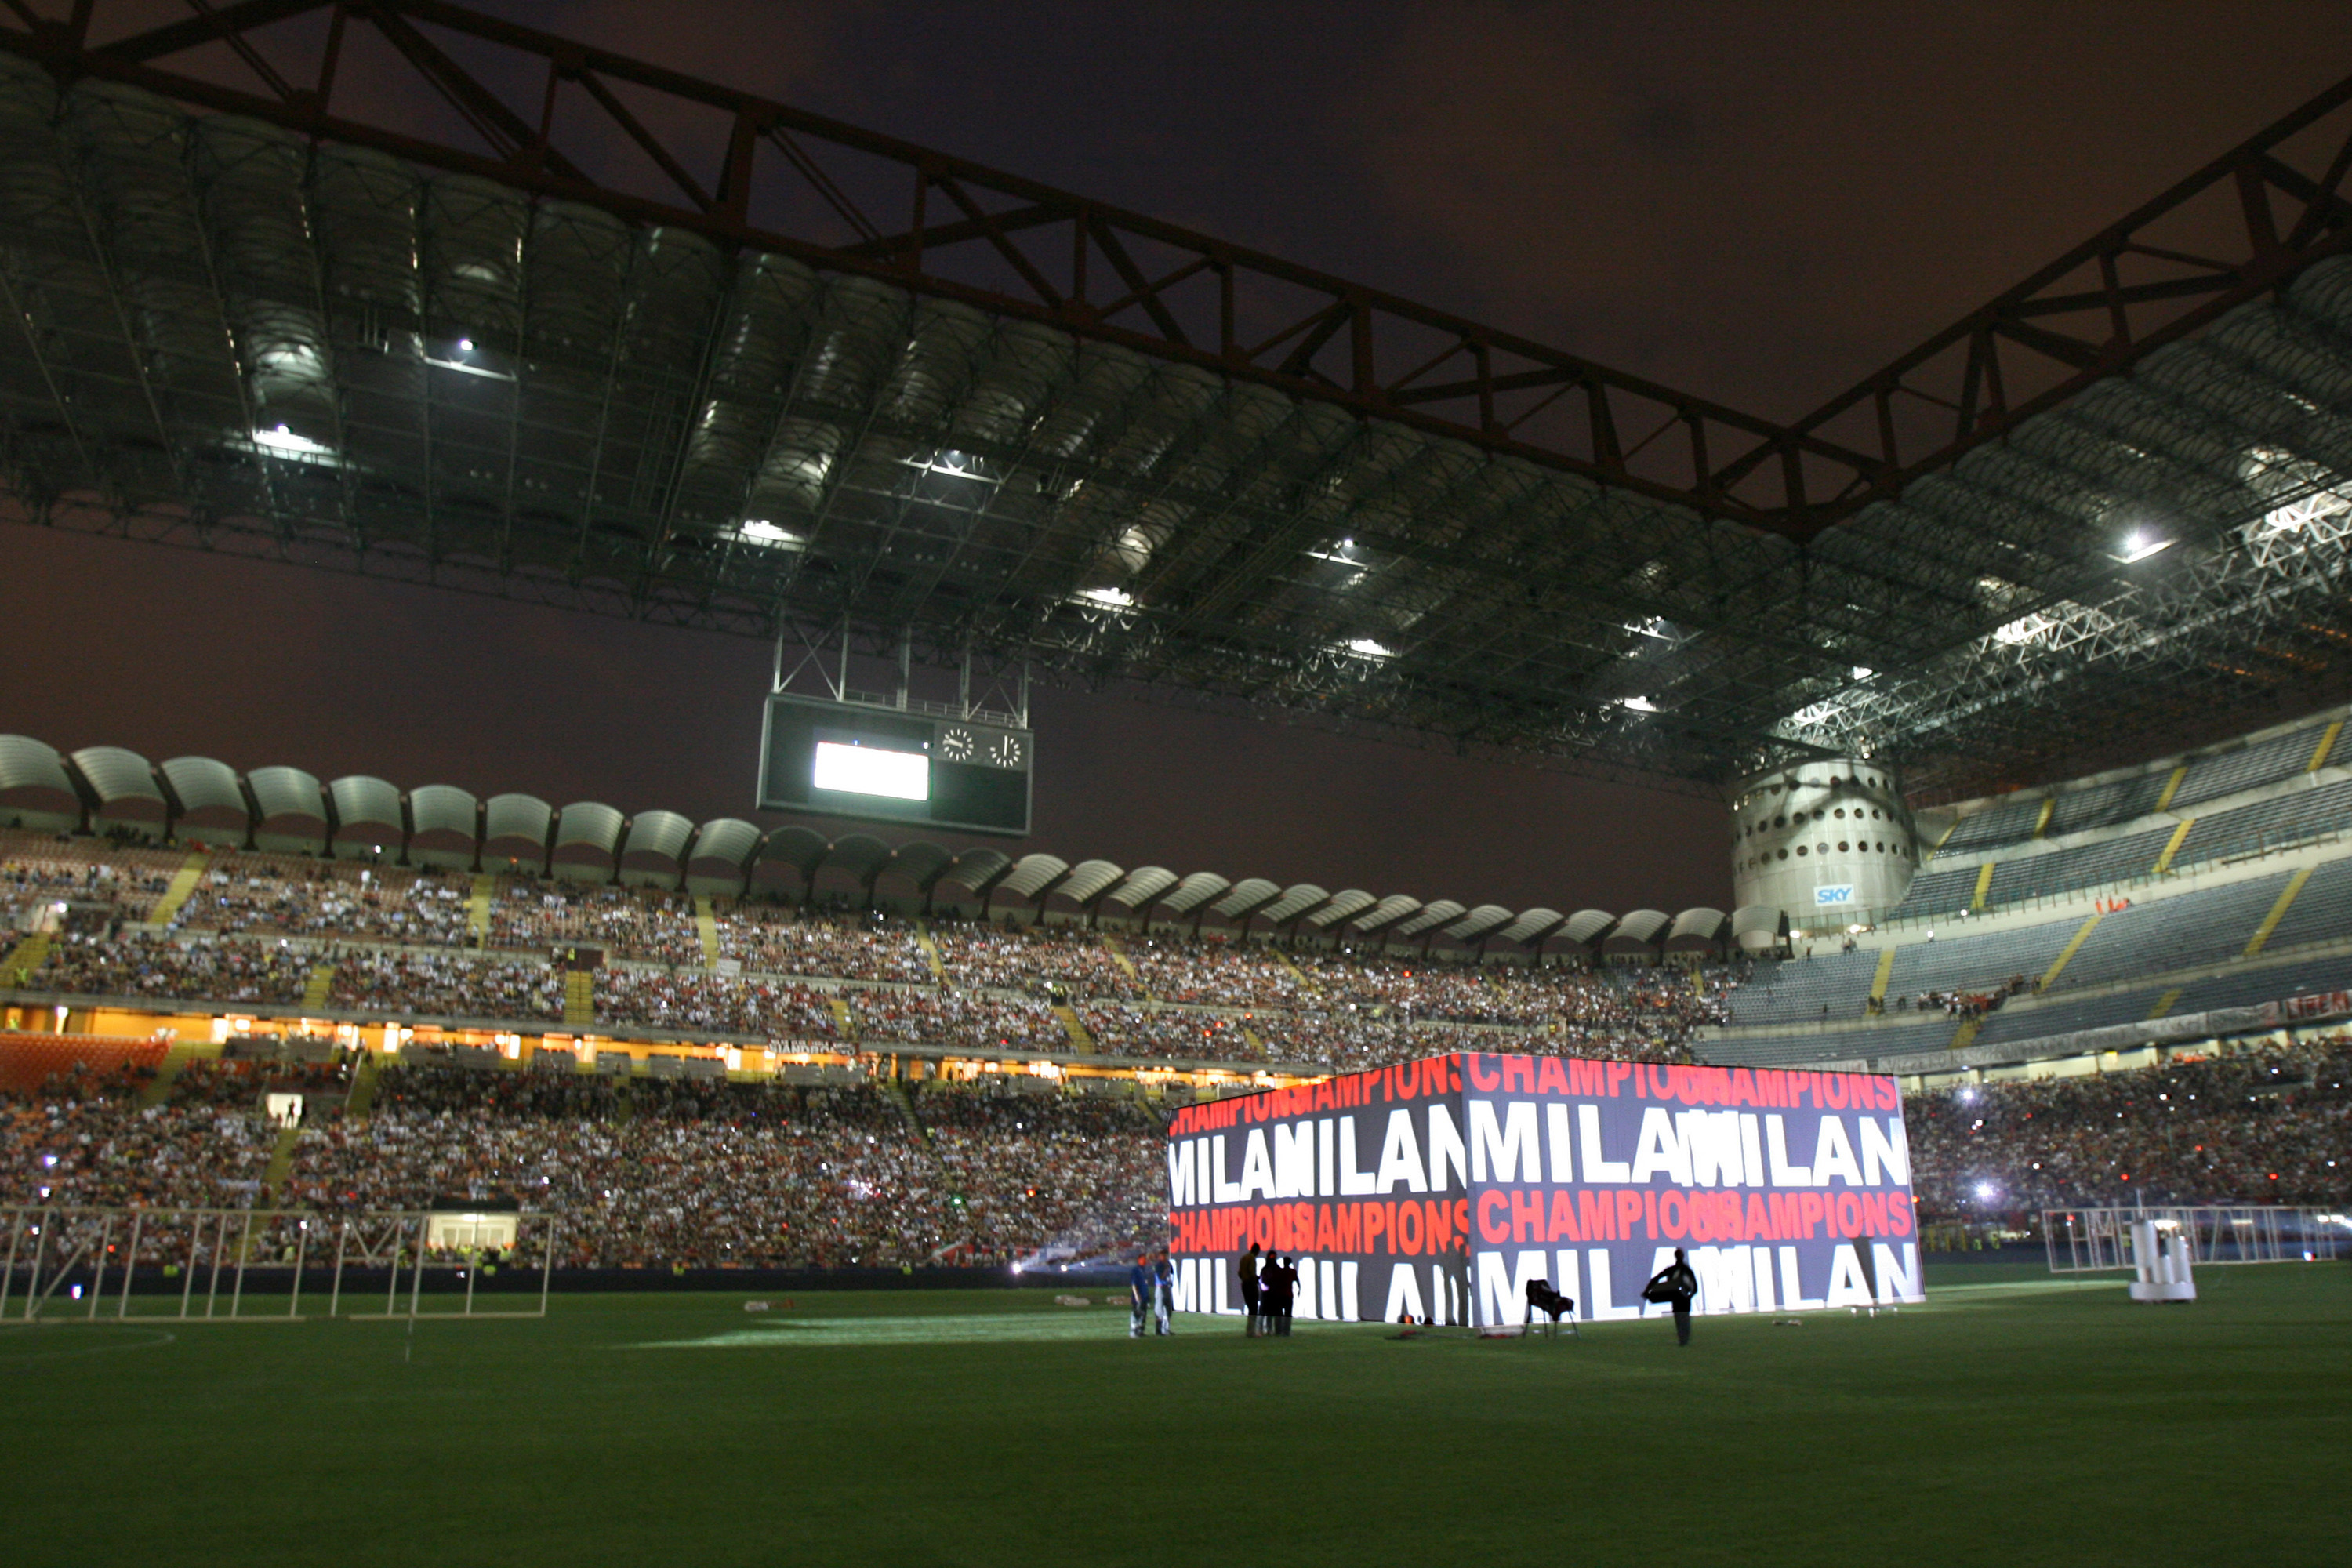 MILAN, ITALY - MAY 25: A general view of San Siro Stadium during the Champion League celebration party on May 25, 2007 in Milan, Italy. (Photo by Getty Images)